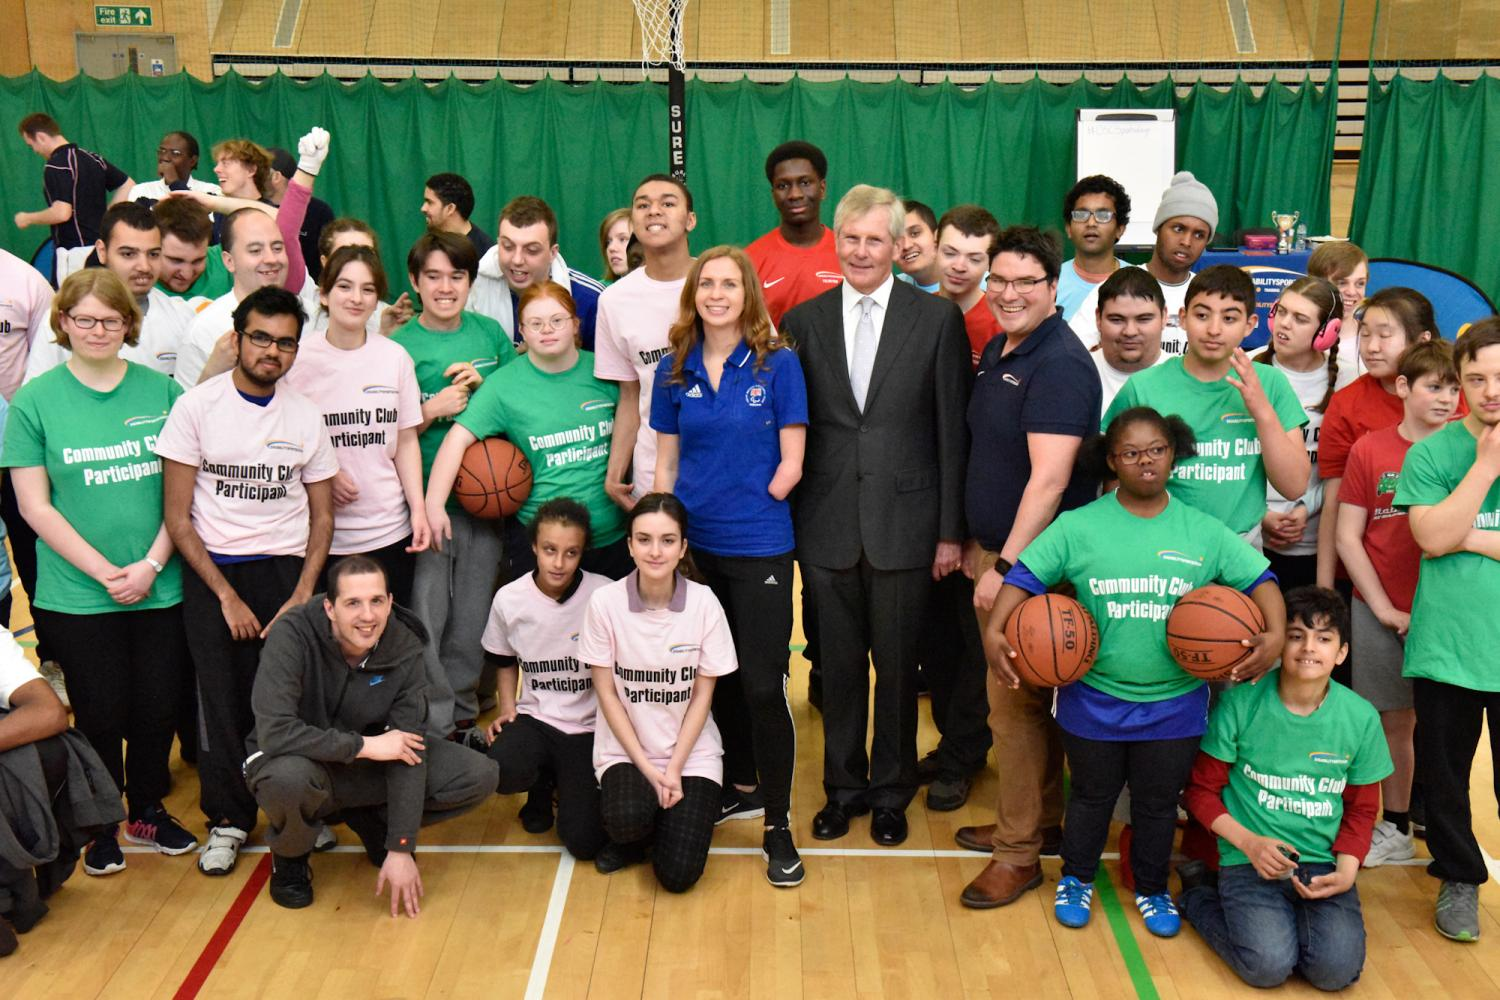 #LDNMovesMe London Sport Campaign with DSC Easter Sports Day